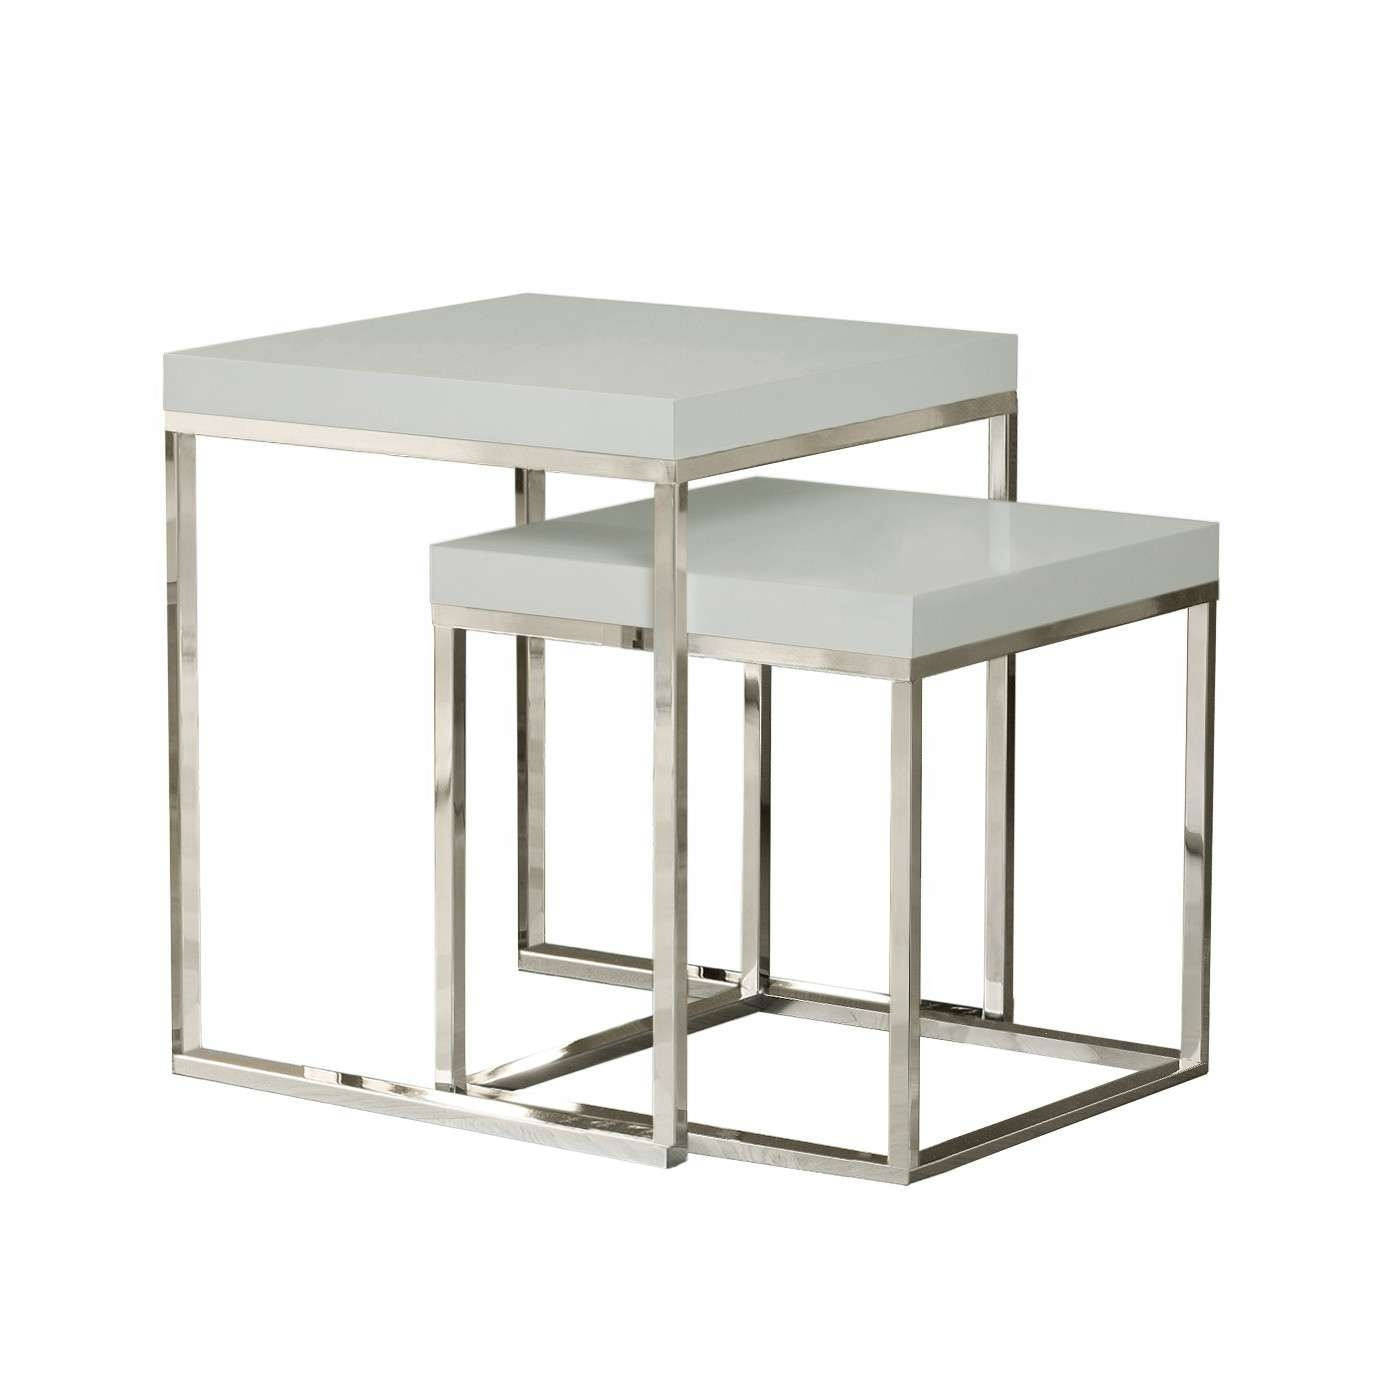 Prairie Nesting Tables High Gloss White Tops / Chrome Legs In Most Recent Chrome Leg Coffee Tables (View 15 of 20)